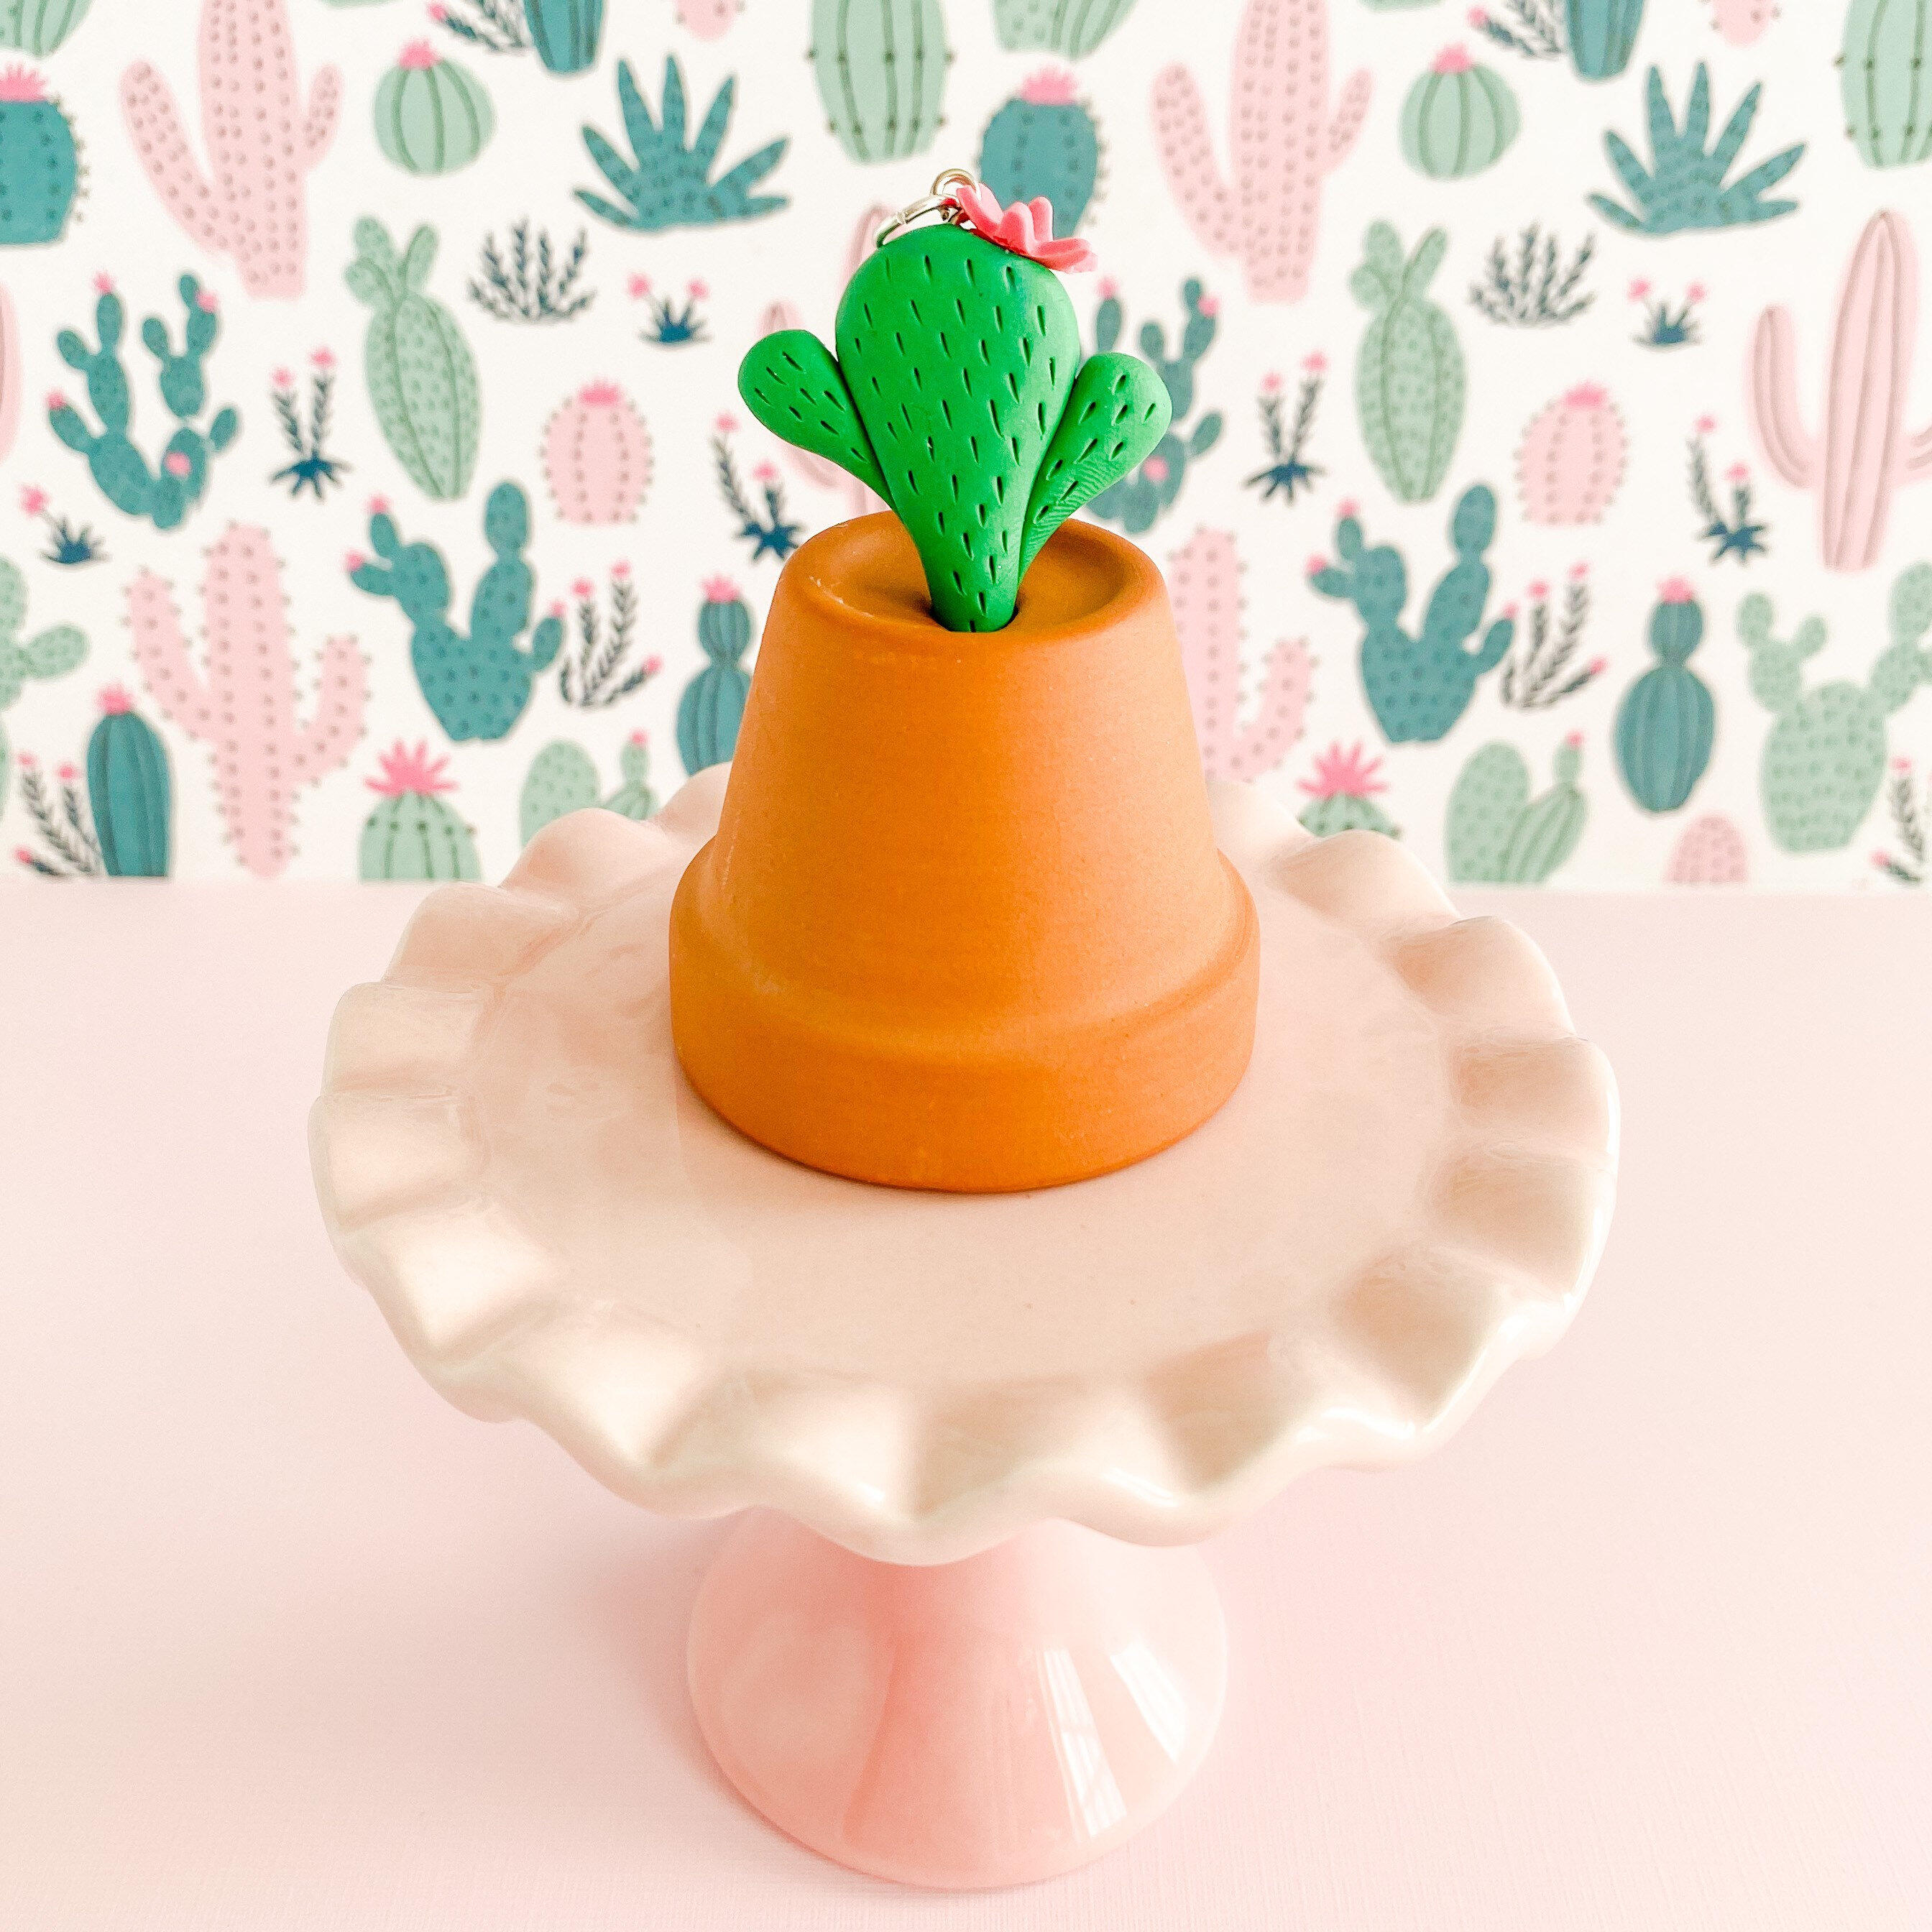 fireflyFrippery Cactus Charm with flower Displayed on Upside Down Miniature Terra Cotta Pot